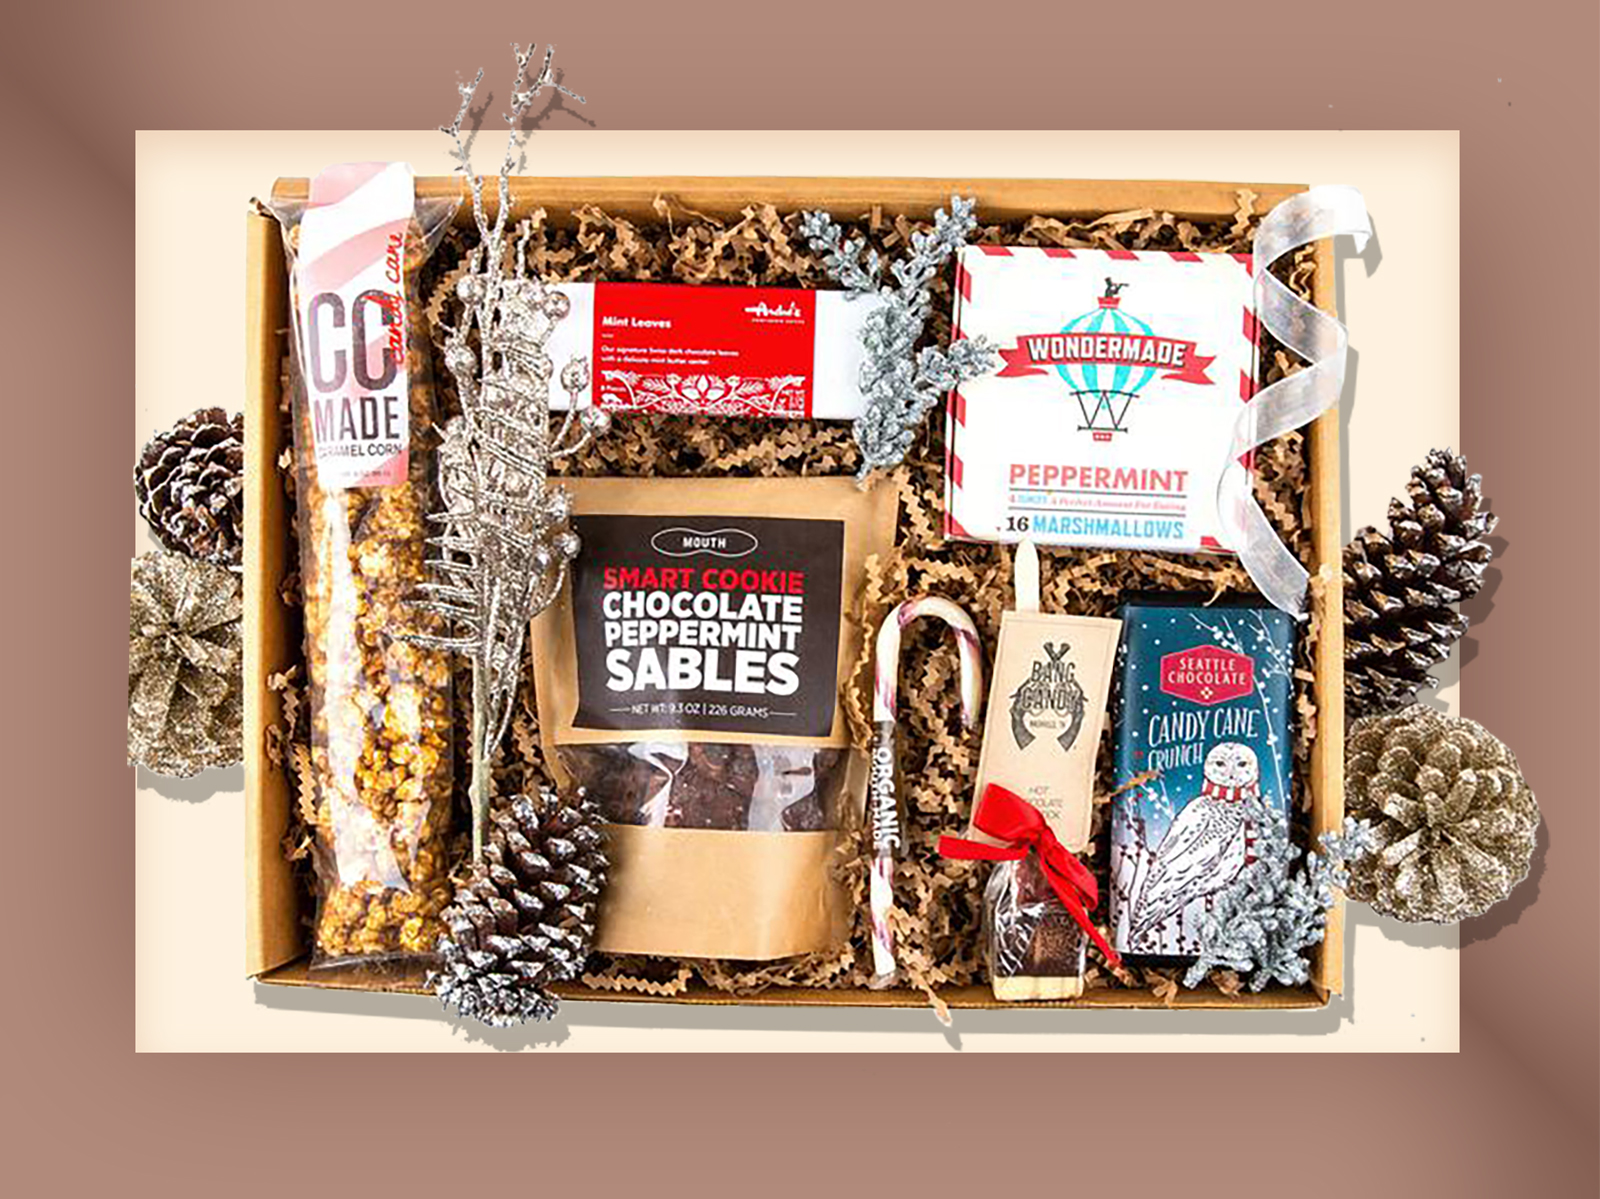 Mouth peppermint gift box